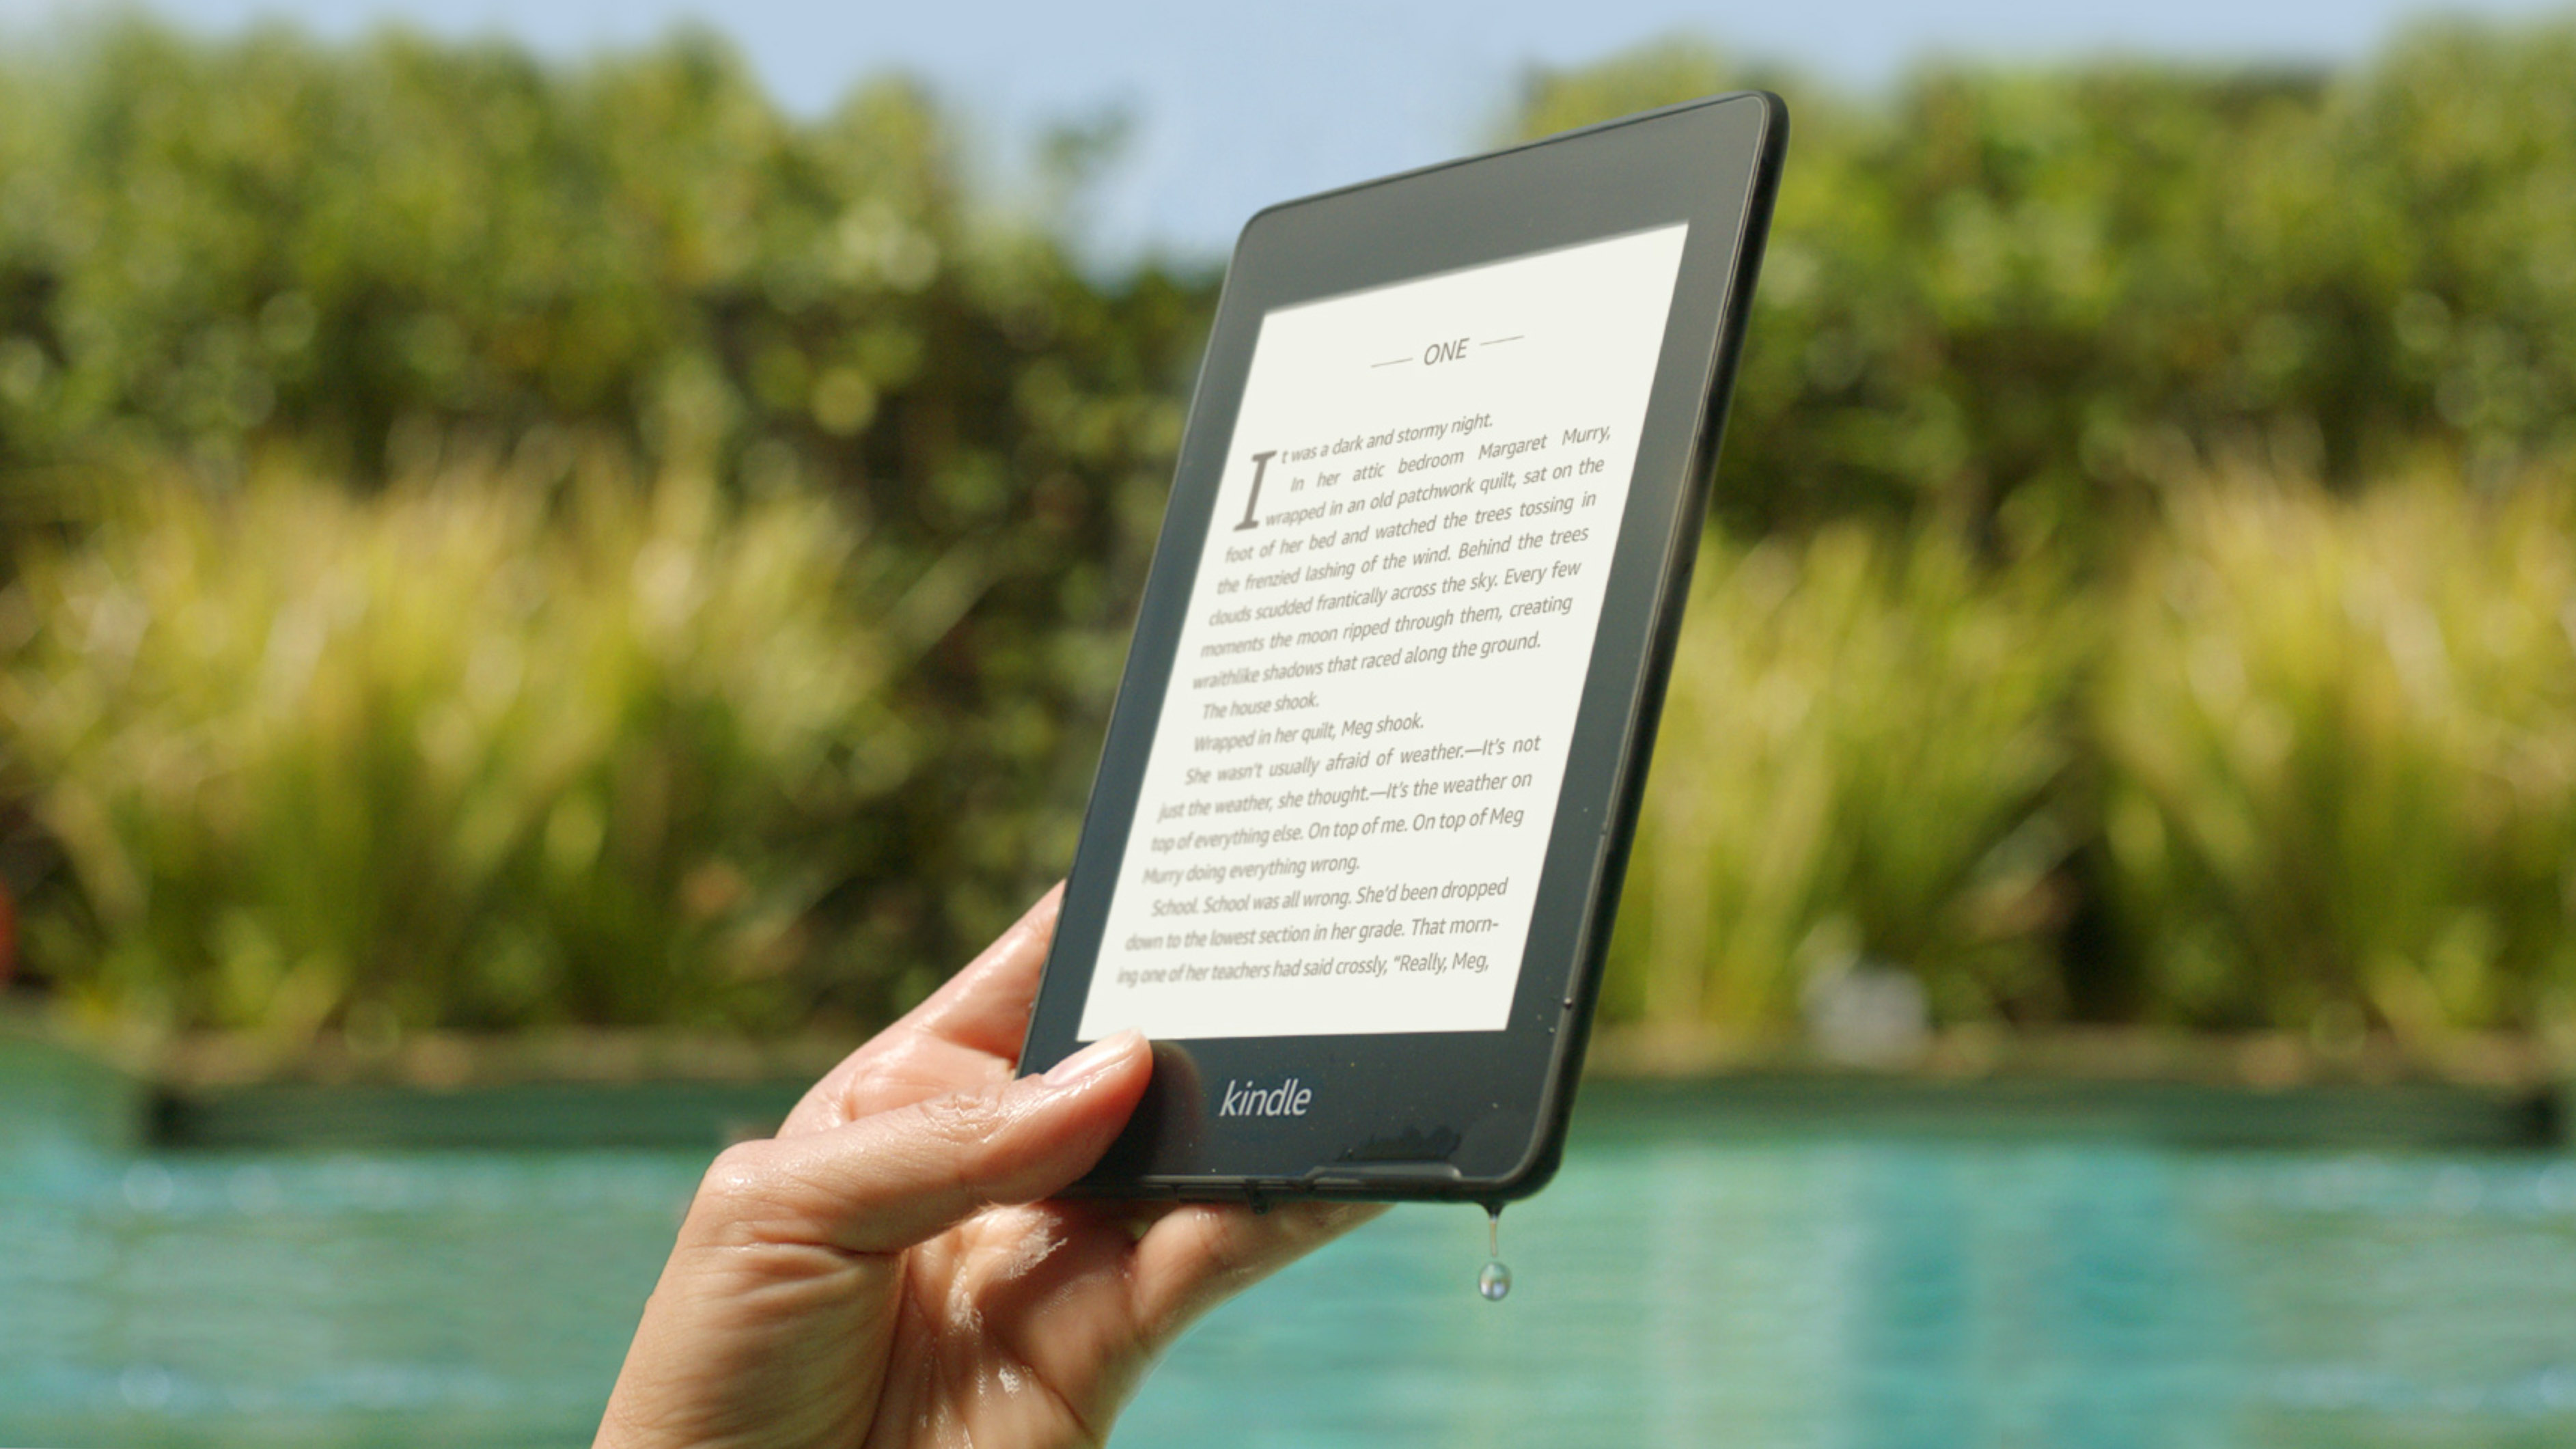 Latest waterproof Kindle Paperwhite is $90 ($40 off), its lowest price yet